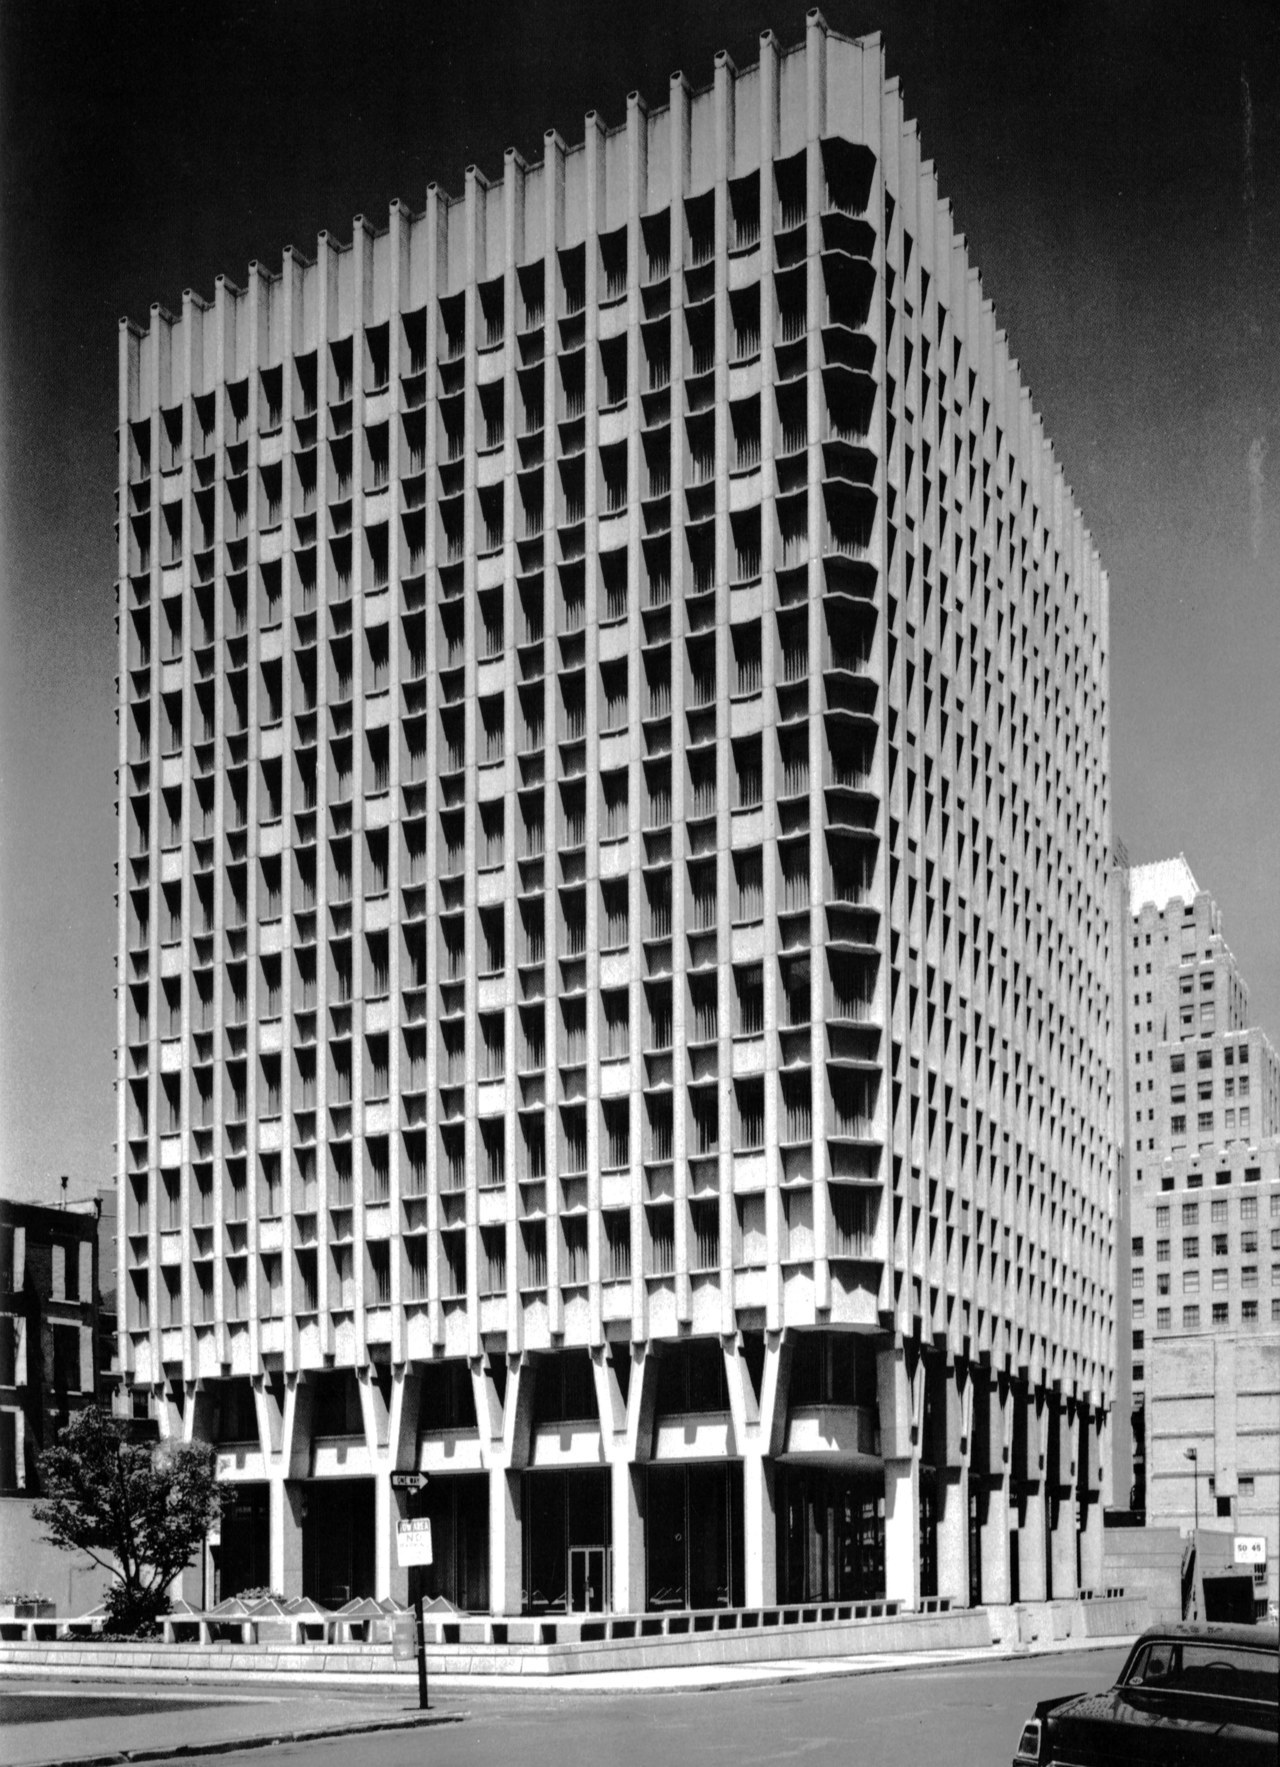 Blue Cross Blue Shield Building, Boston, Massachusetts, 1957-60 (Paul Rudolph)